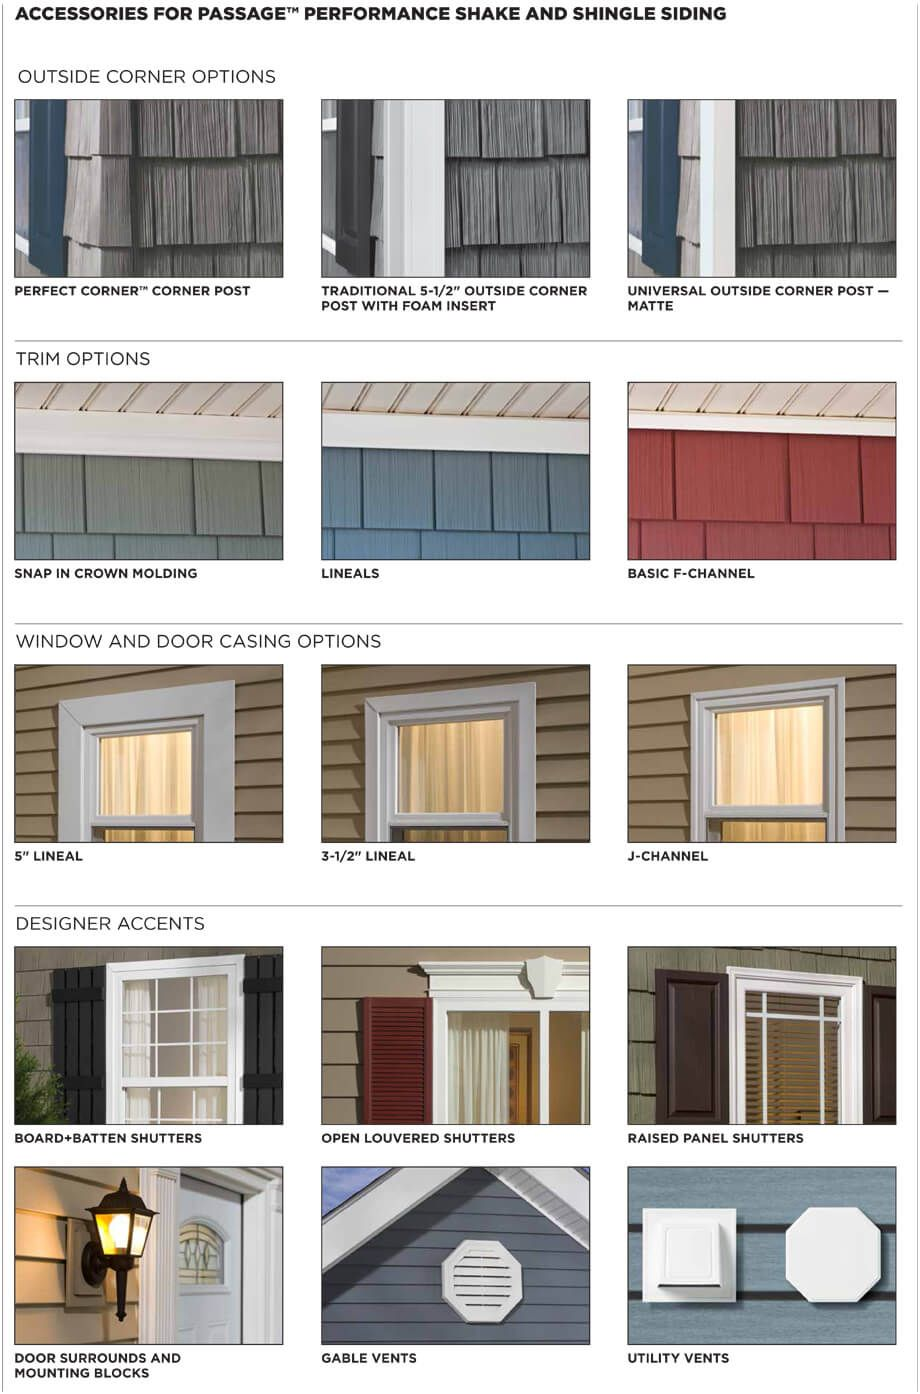 This Is The Exterior Solution R No Other Brand Offers Vinyl Siding Polymer Shakes And Shingles Repl House Exterior Outdoor Window Trim Window Trim Exterior